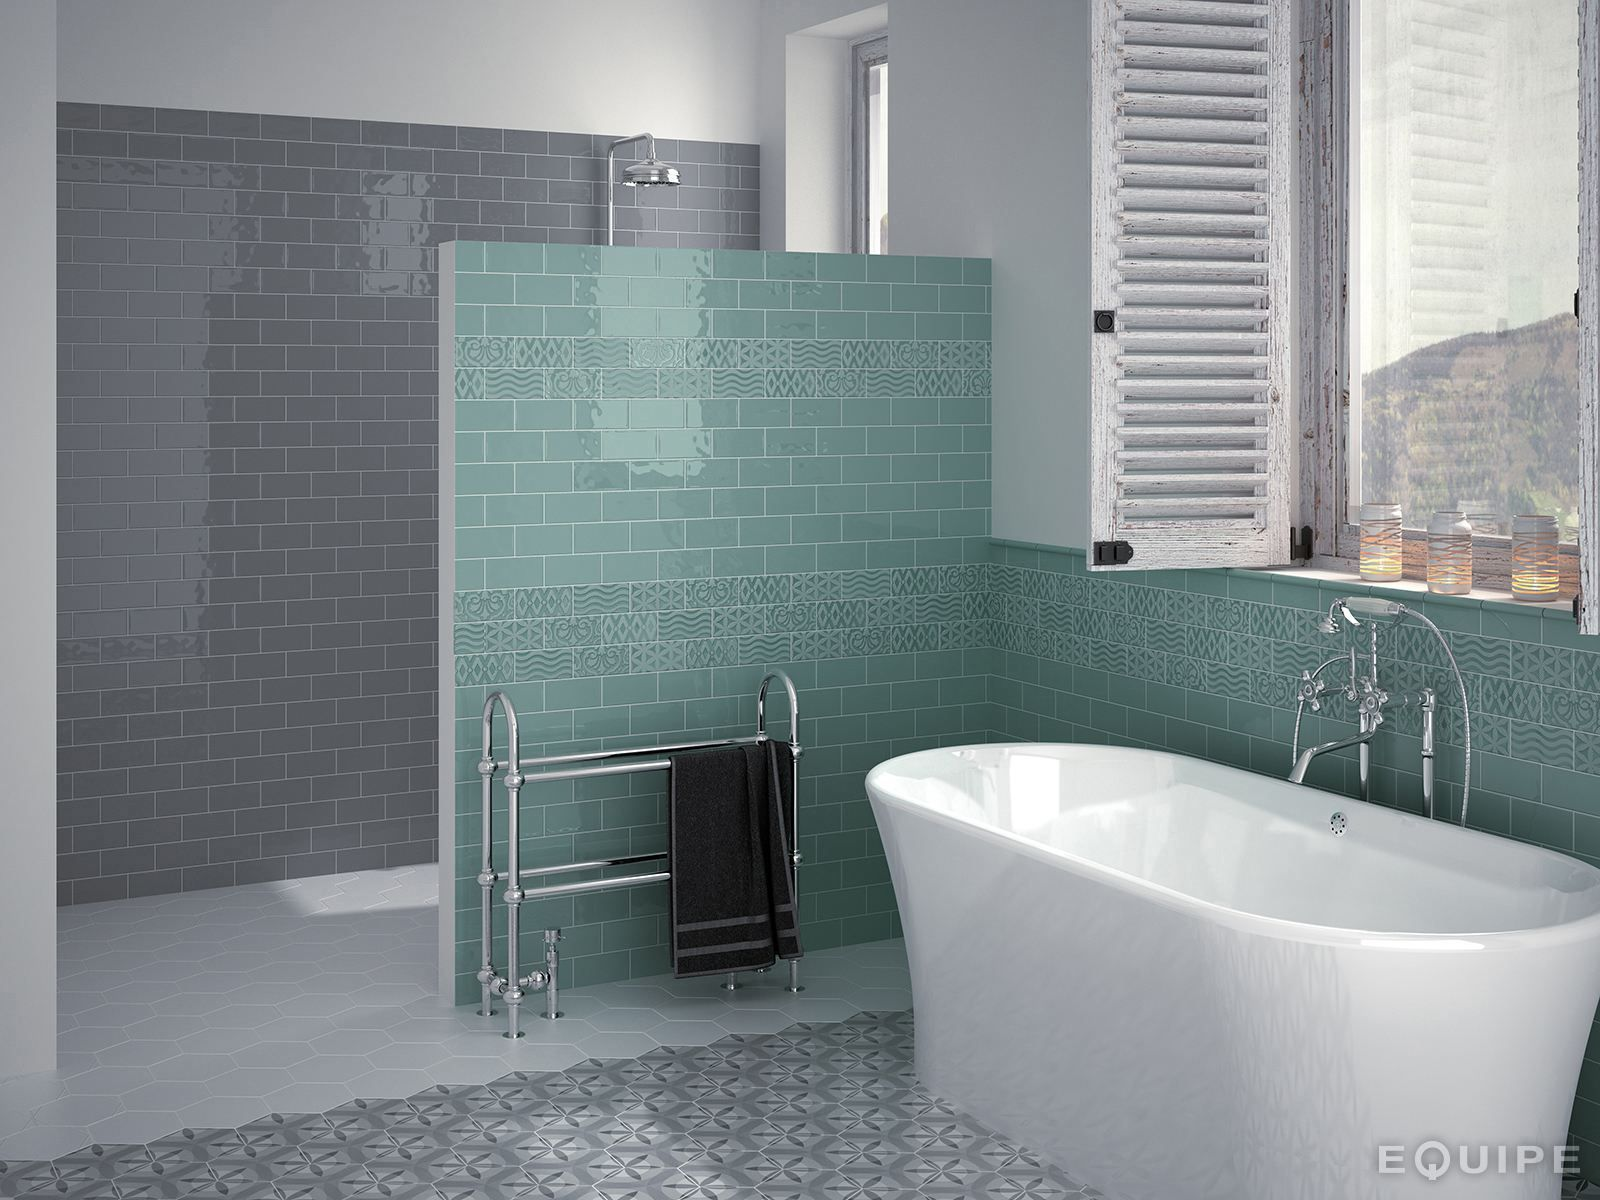 White Paste Wall Tiles Masia By Equipe Ceramicas With Images